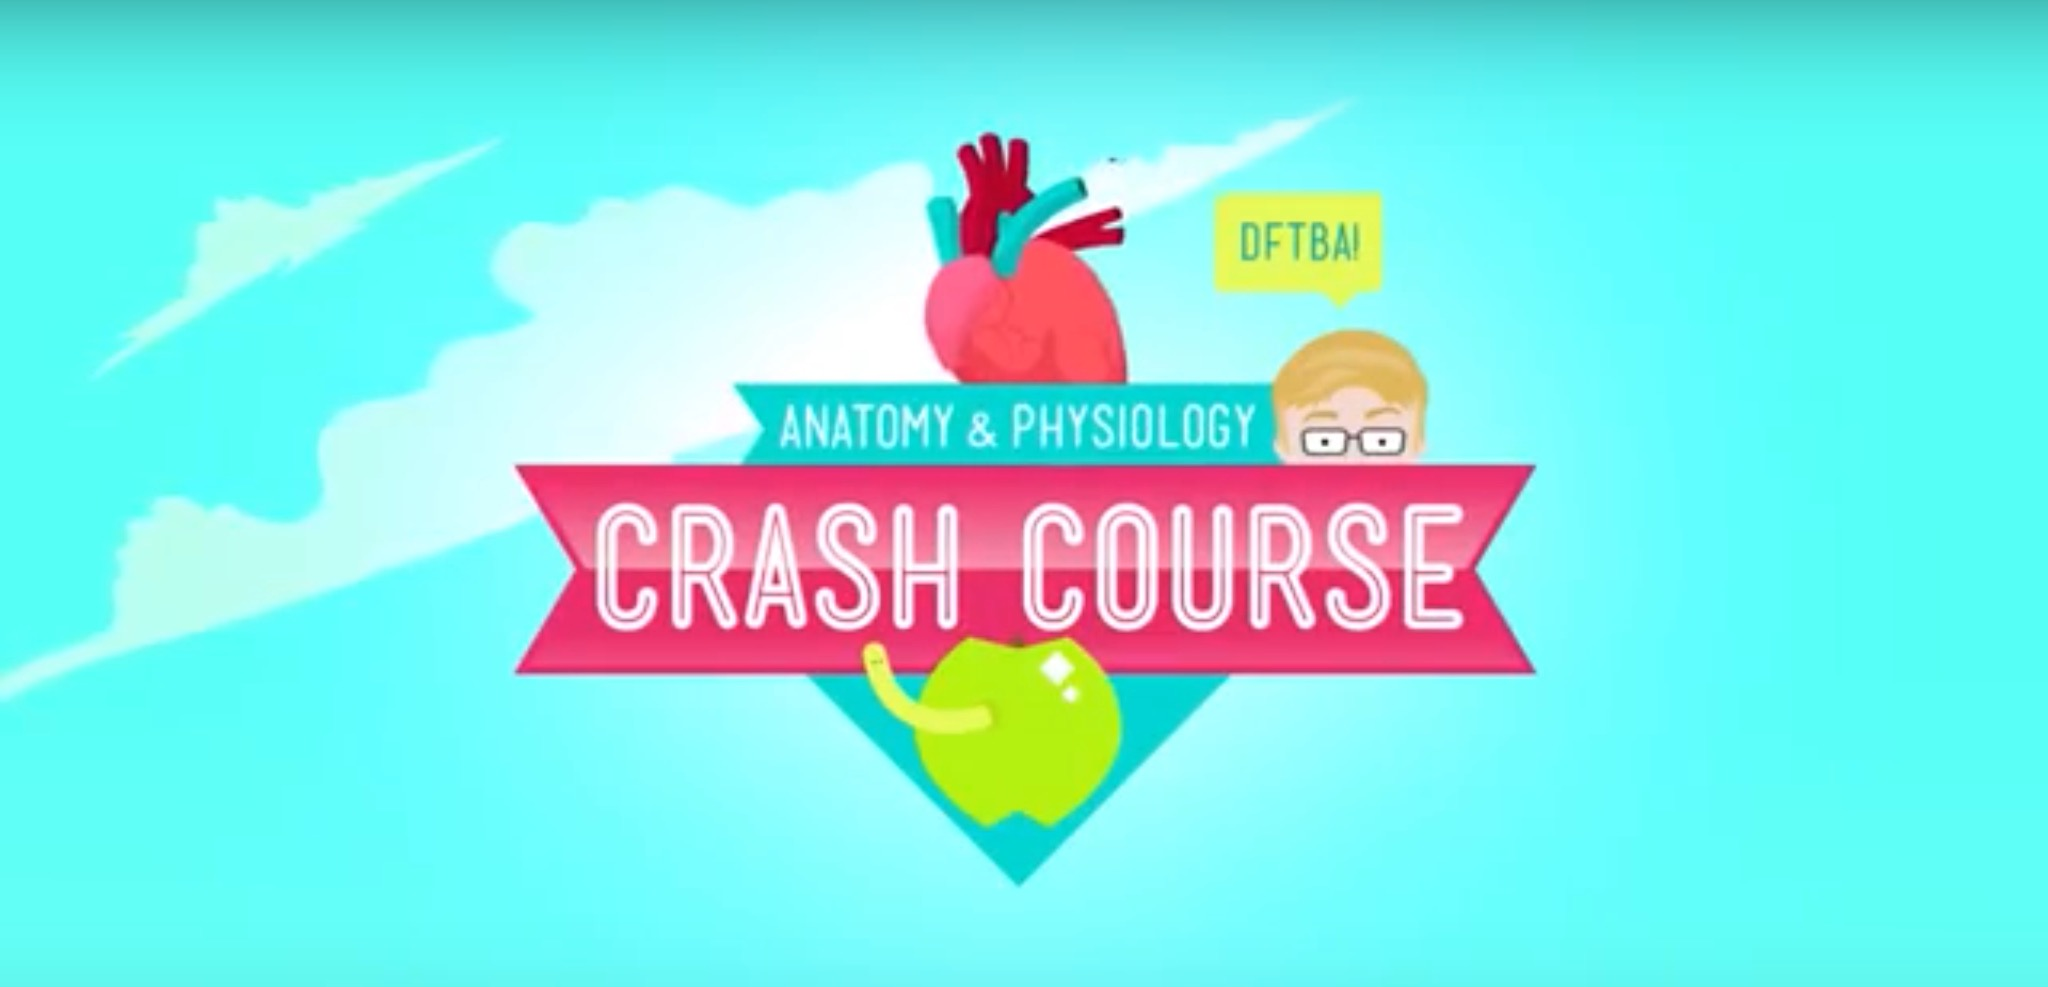 Crash Course: Anatomy & Physiology (TV Series 2015– ) - IMDb